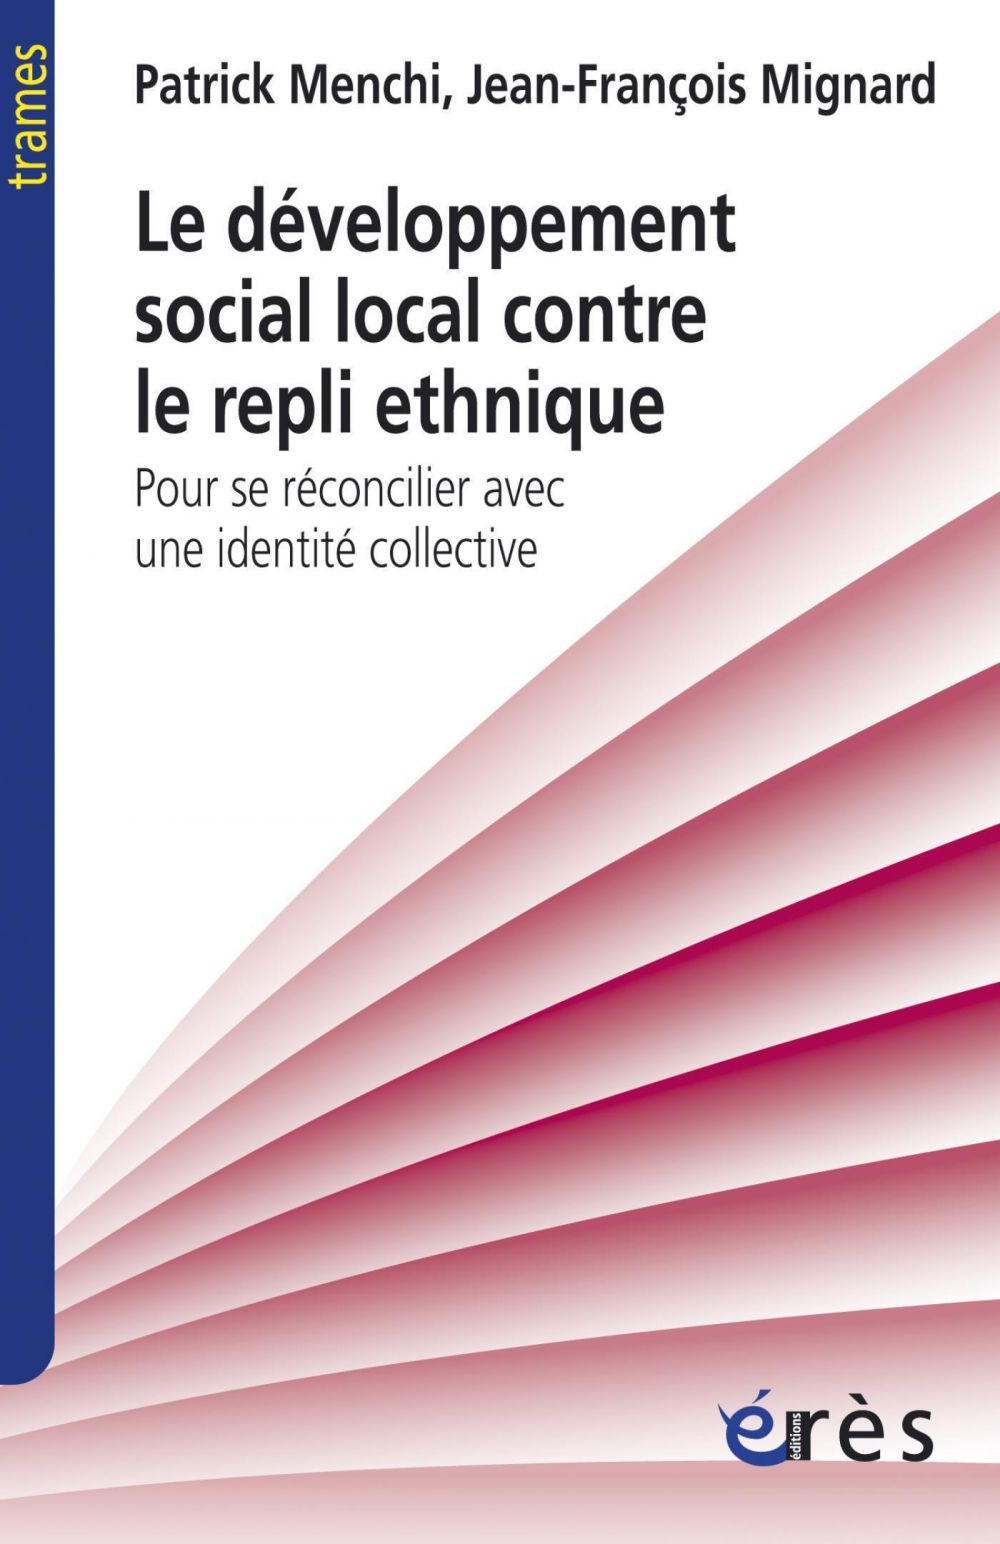 Le développement social local contre le repli ethnique